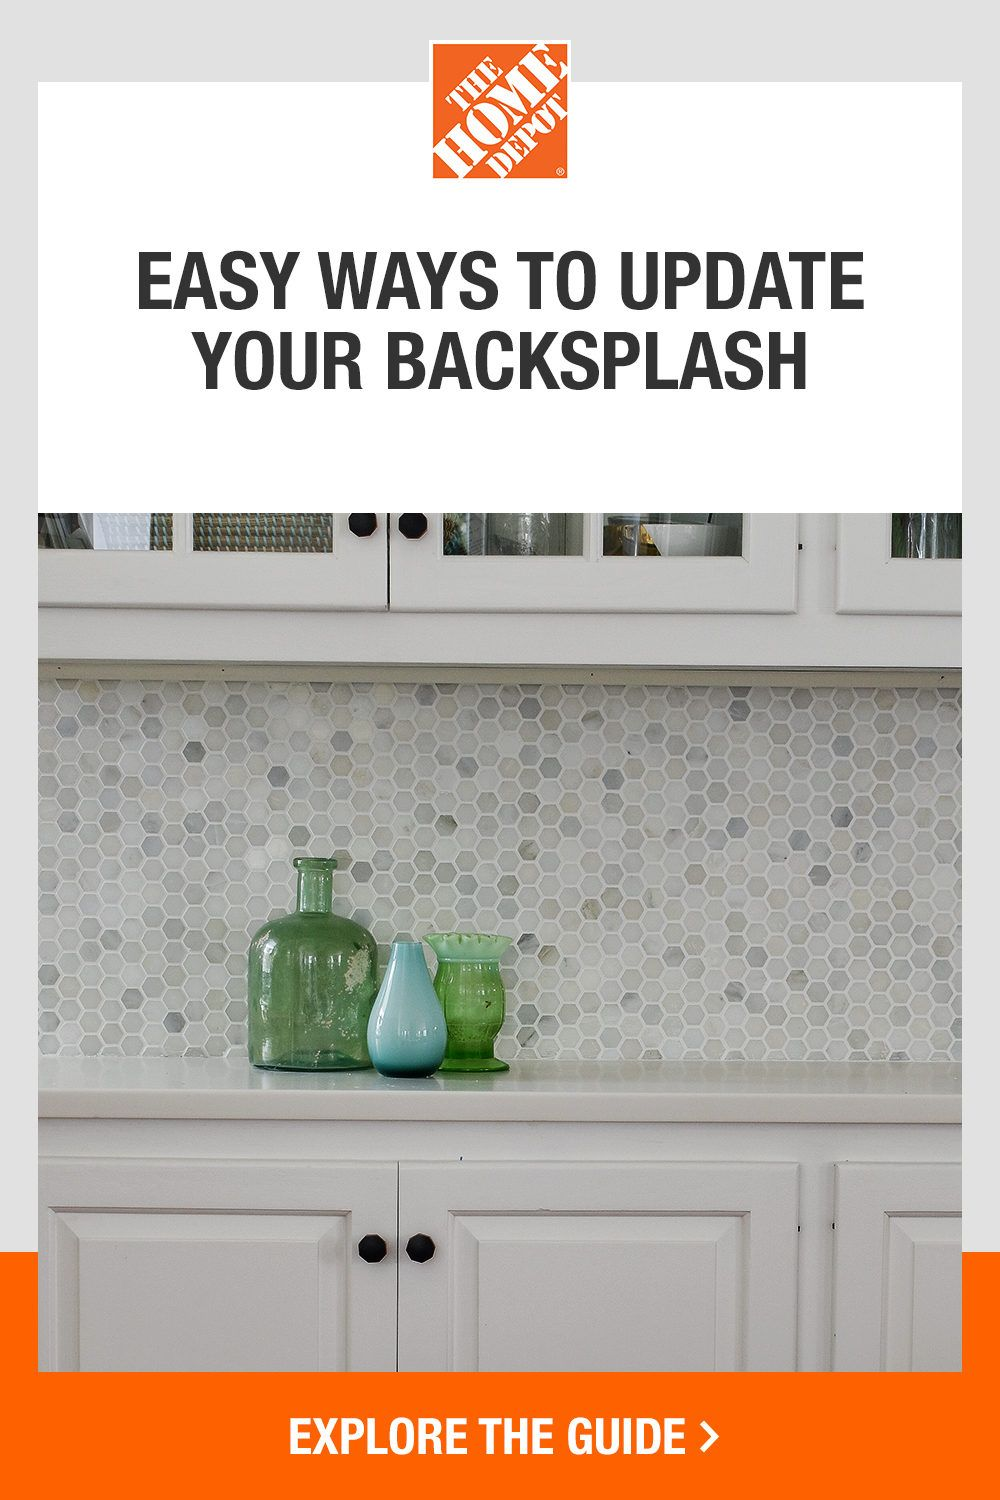 Give your kitchen an easy upgrade new tile backsplash. This Home Depot guide shares a step-by-step tutorial on how to install backsplash tile yourself, including tips and tricks for newbie DIYers. Click to learn how to add this timeless beauty and instant focal point to your home with help from The Home Depot.